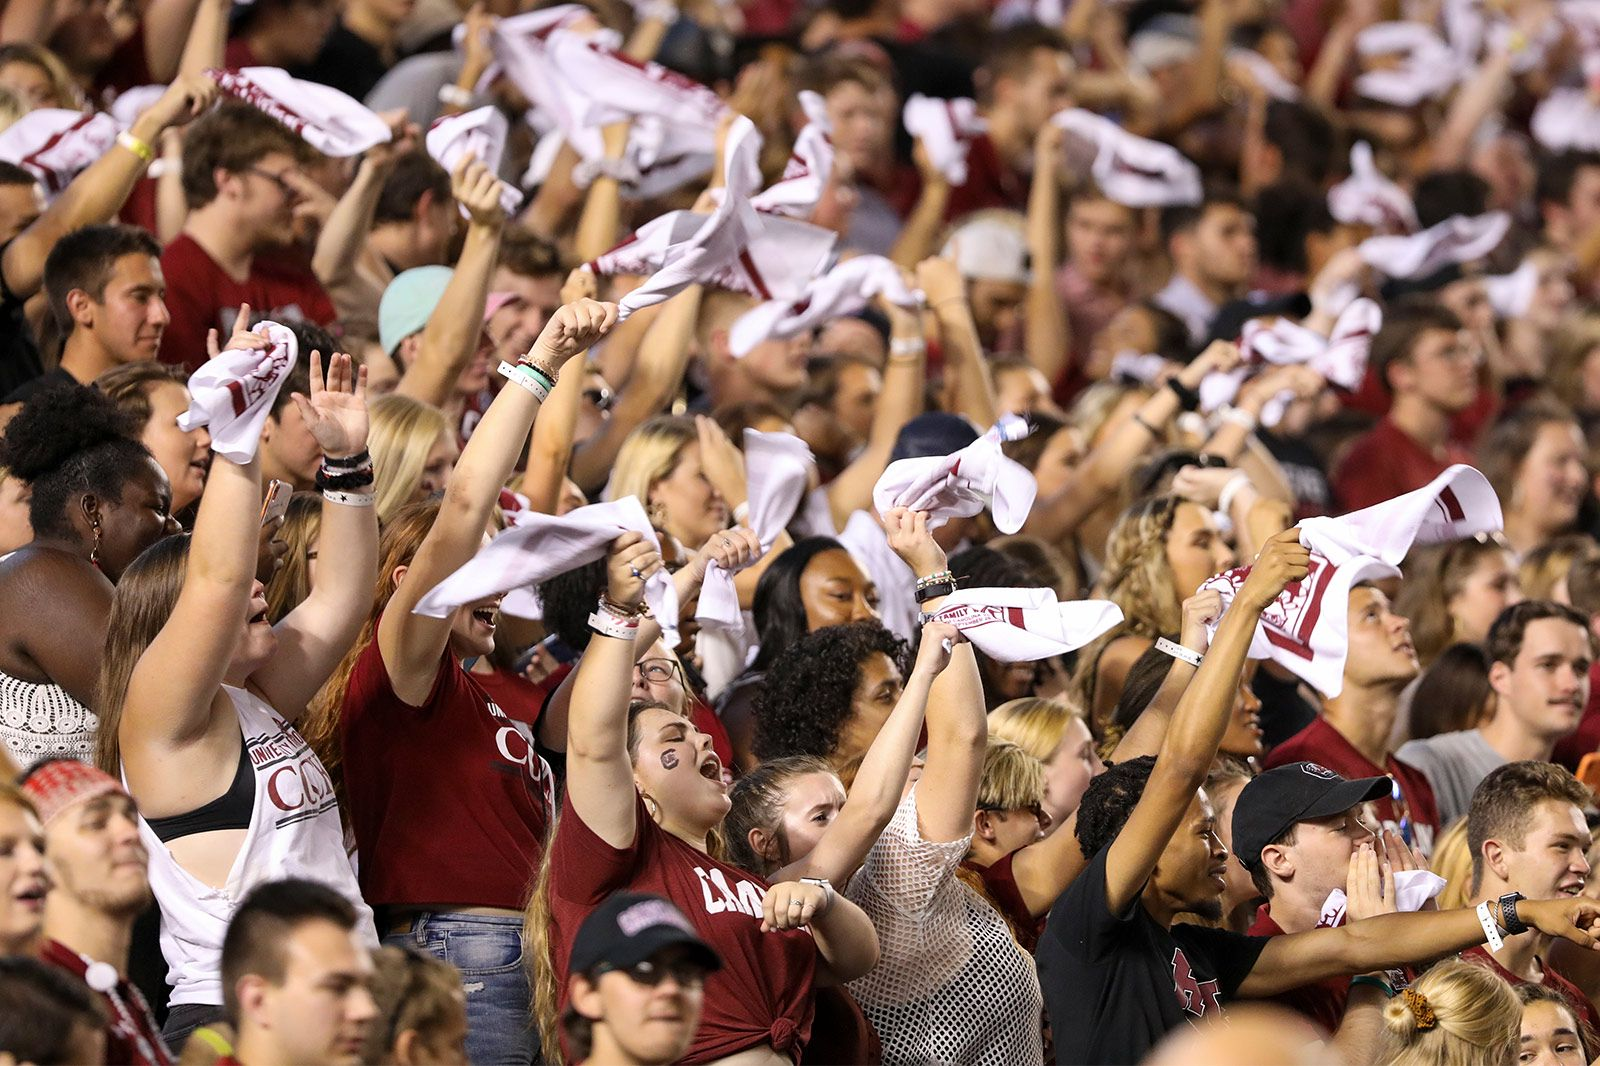 Large crowd of Gamecock students cheering in the stands at Williams Brice Stadium with arms raised, twirling towels in the air.